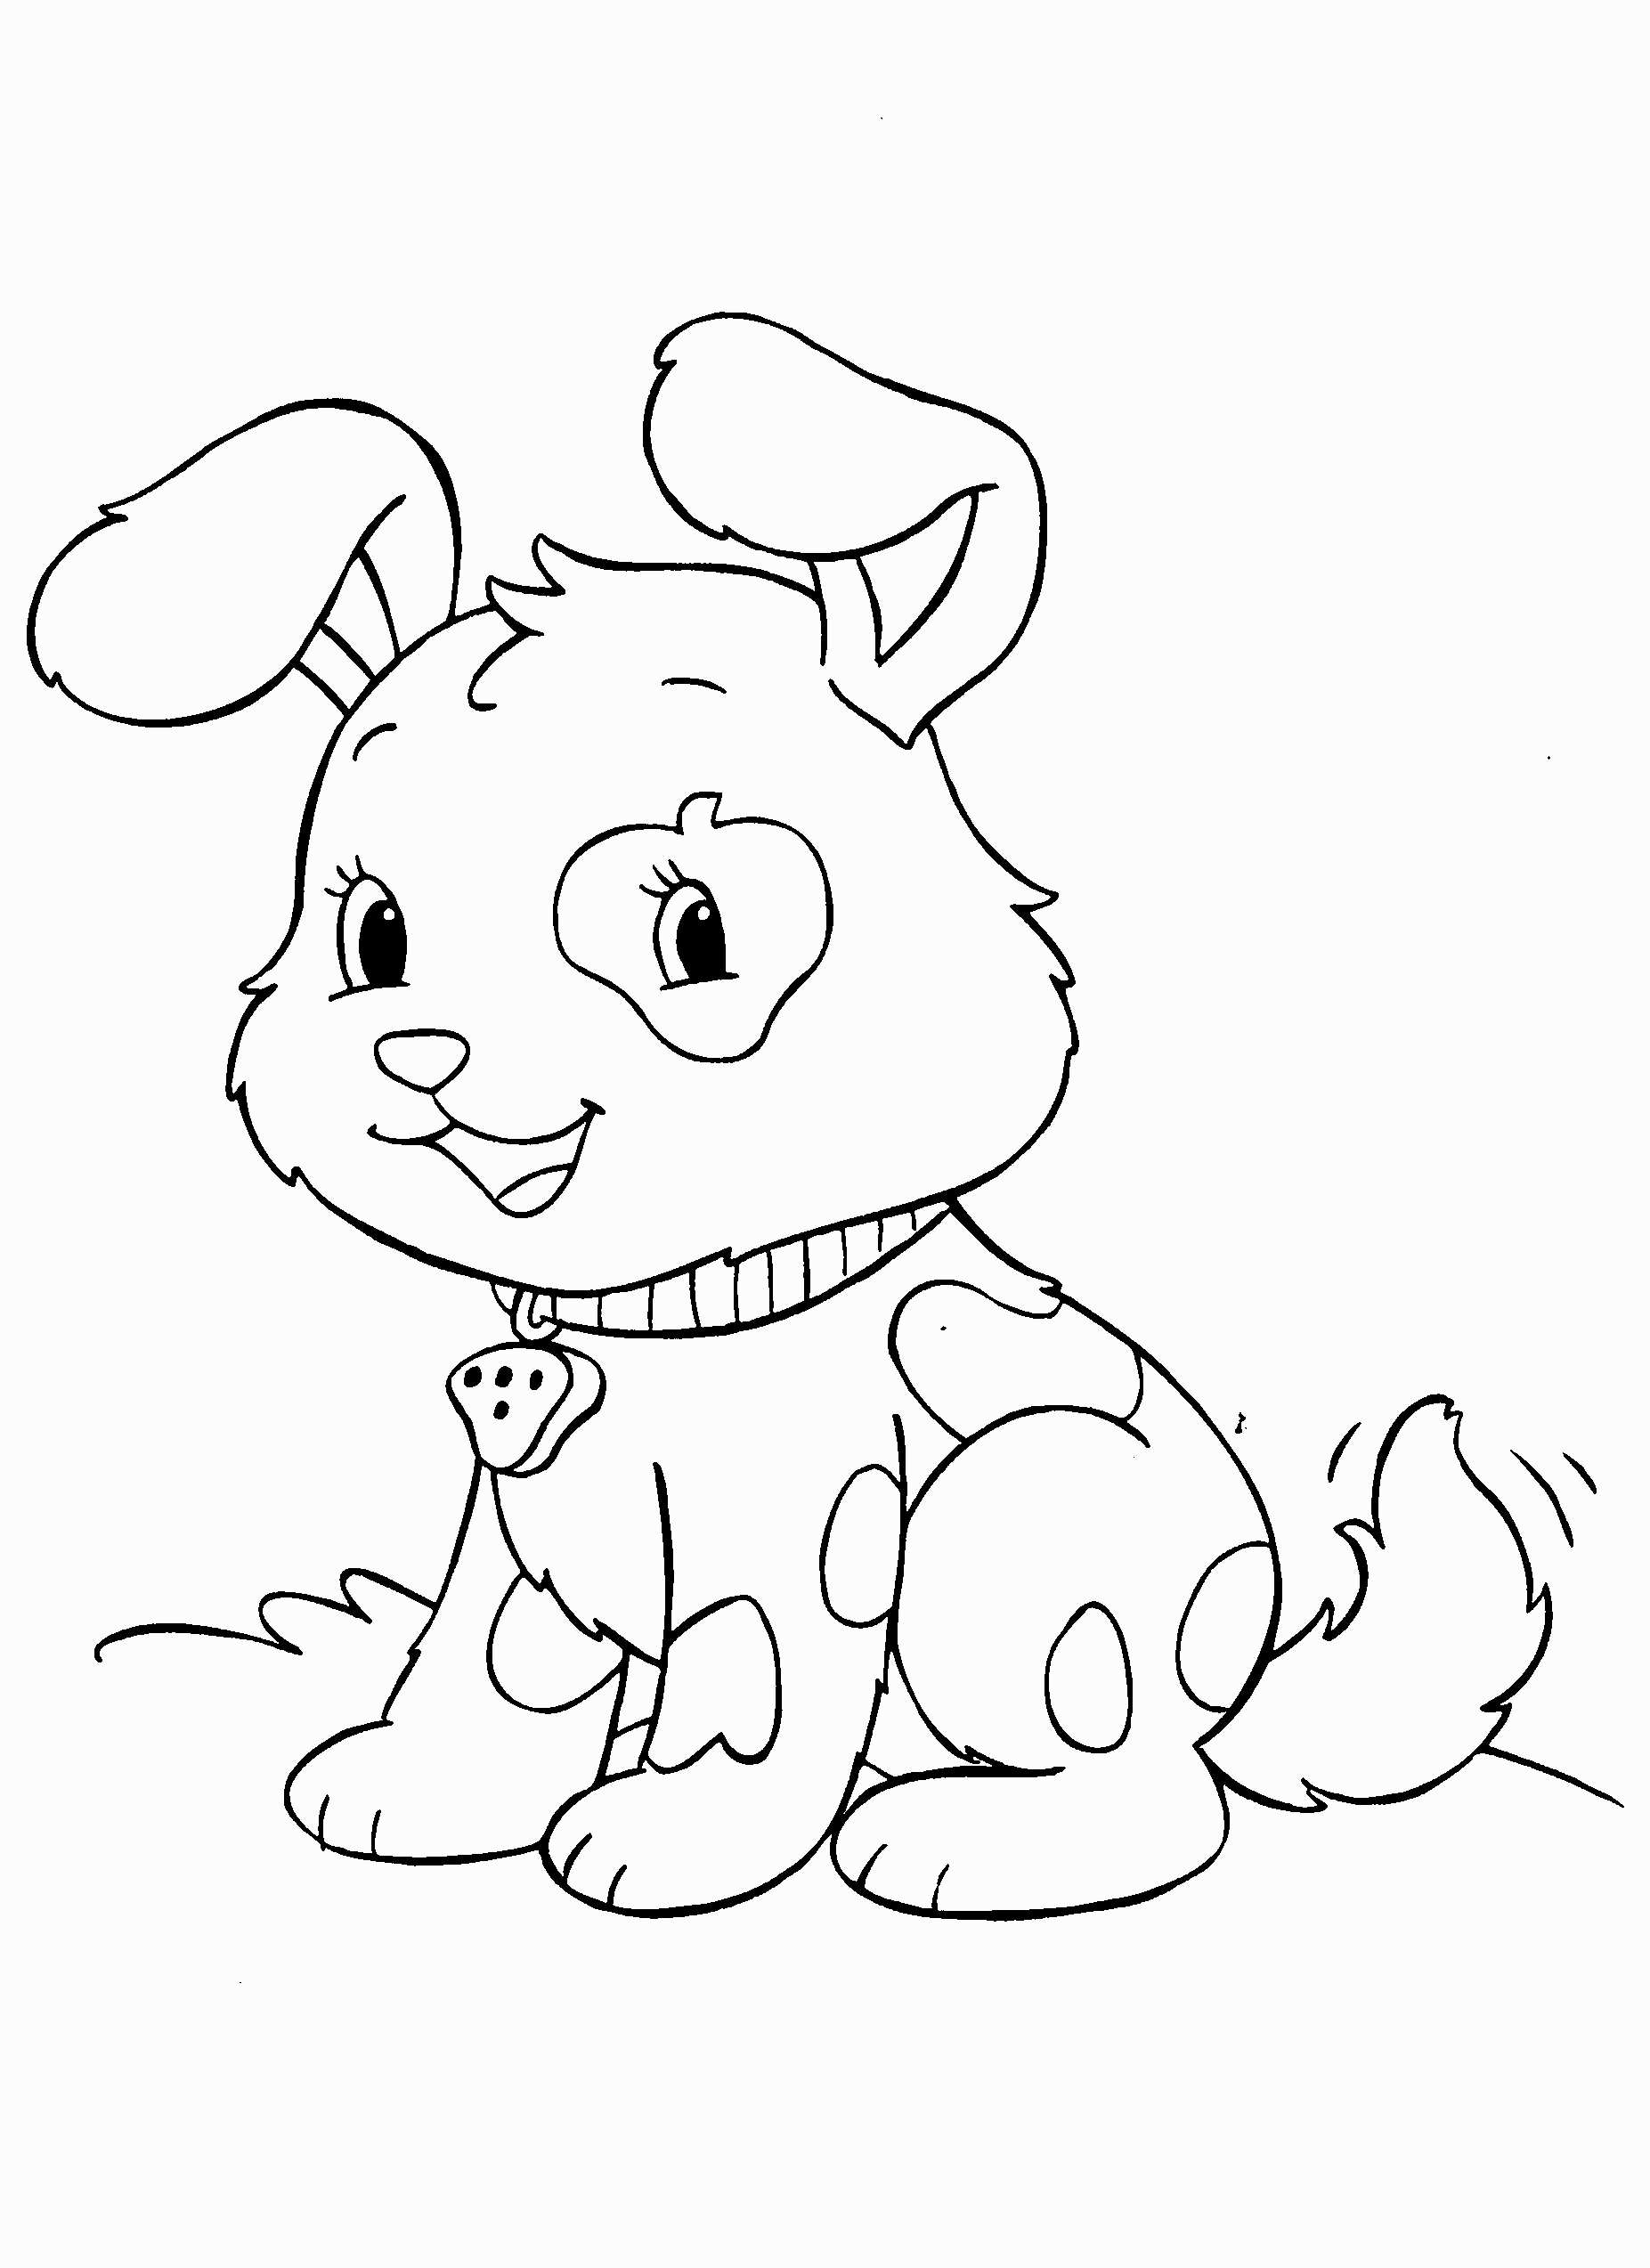 Labor Day Coloring Pages  Gallery 10q - Free For Children